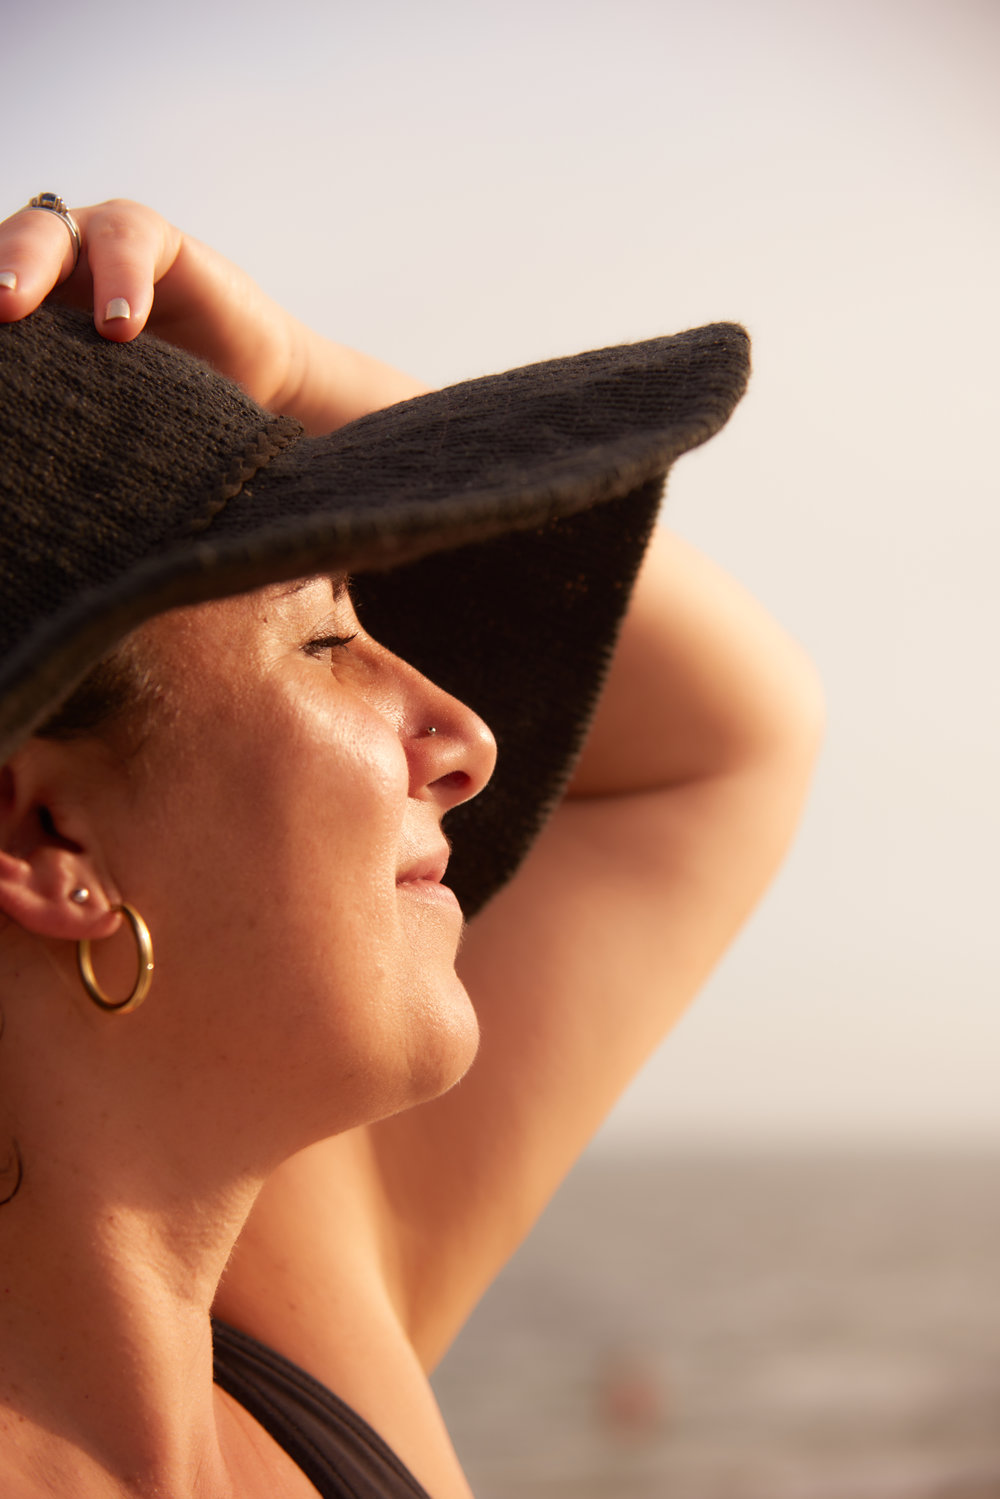 Professional portrait of woman model with a black hat at the beach with the sun on her face.